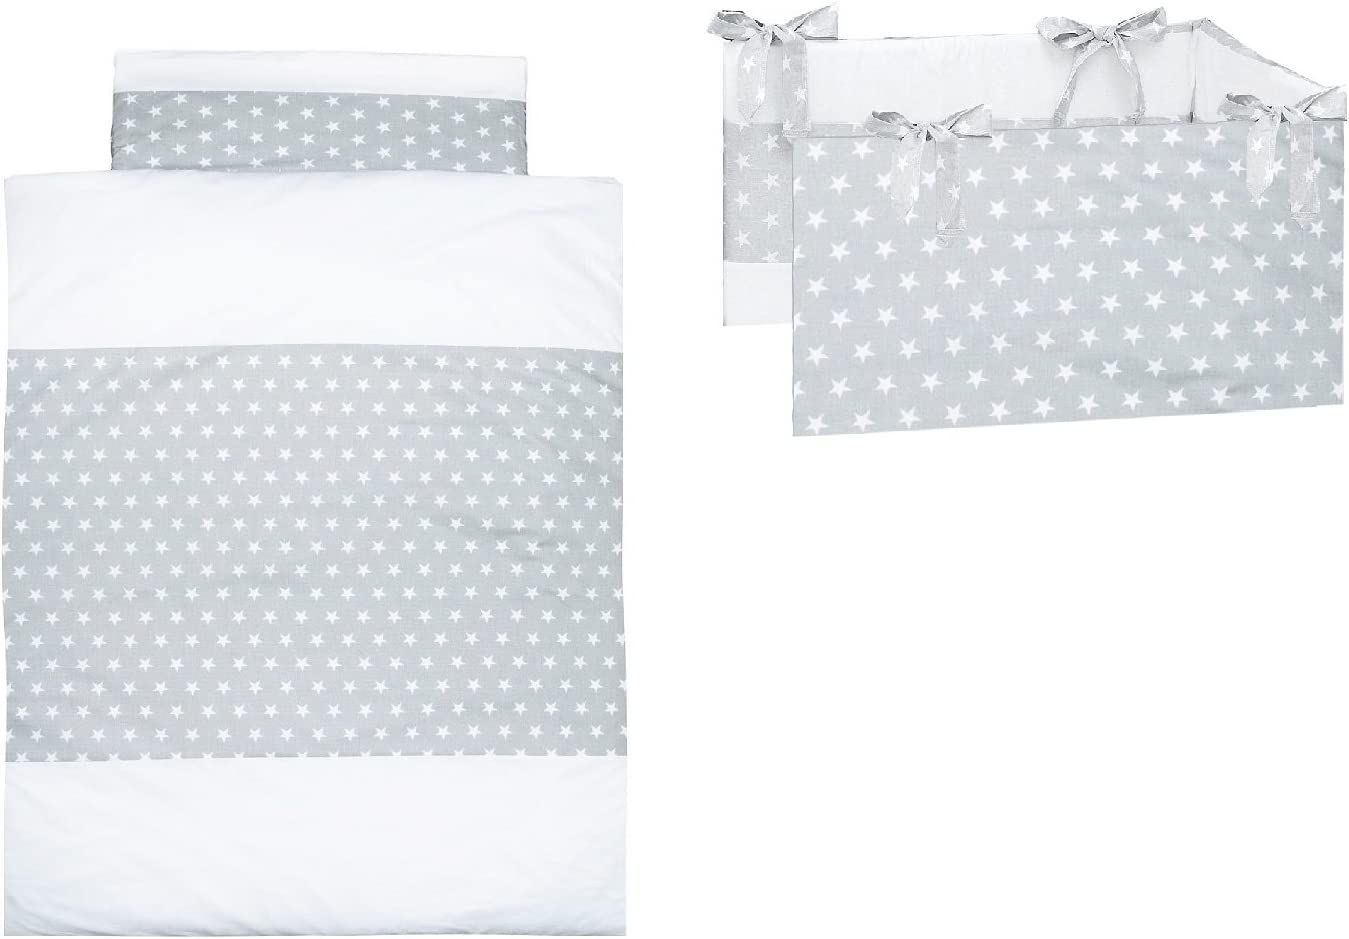 Removable with Zipper 100/% Cotton Duvet Cover and Pillow Case Polka Dots Vizaro OekoTex Cot Bumper 3 Pieces Set for Cot 60x120 cm C Made in EU